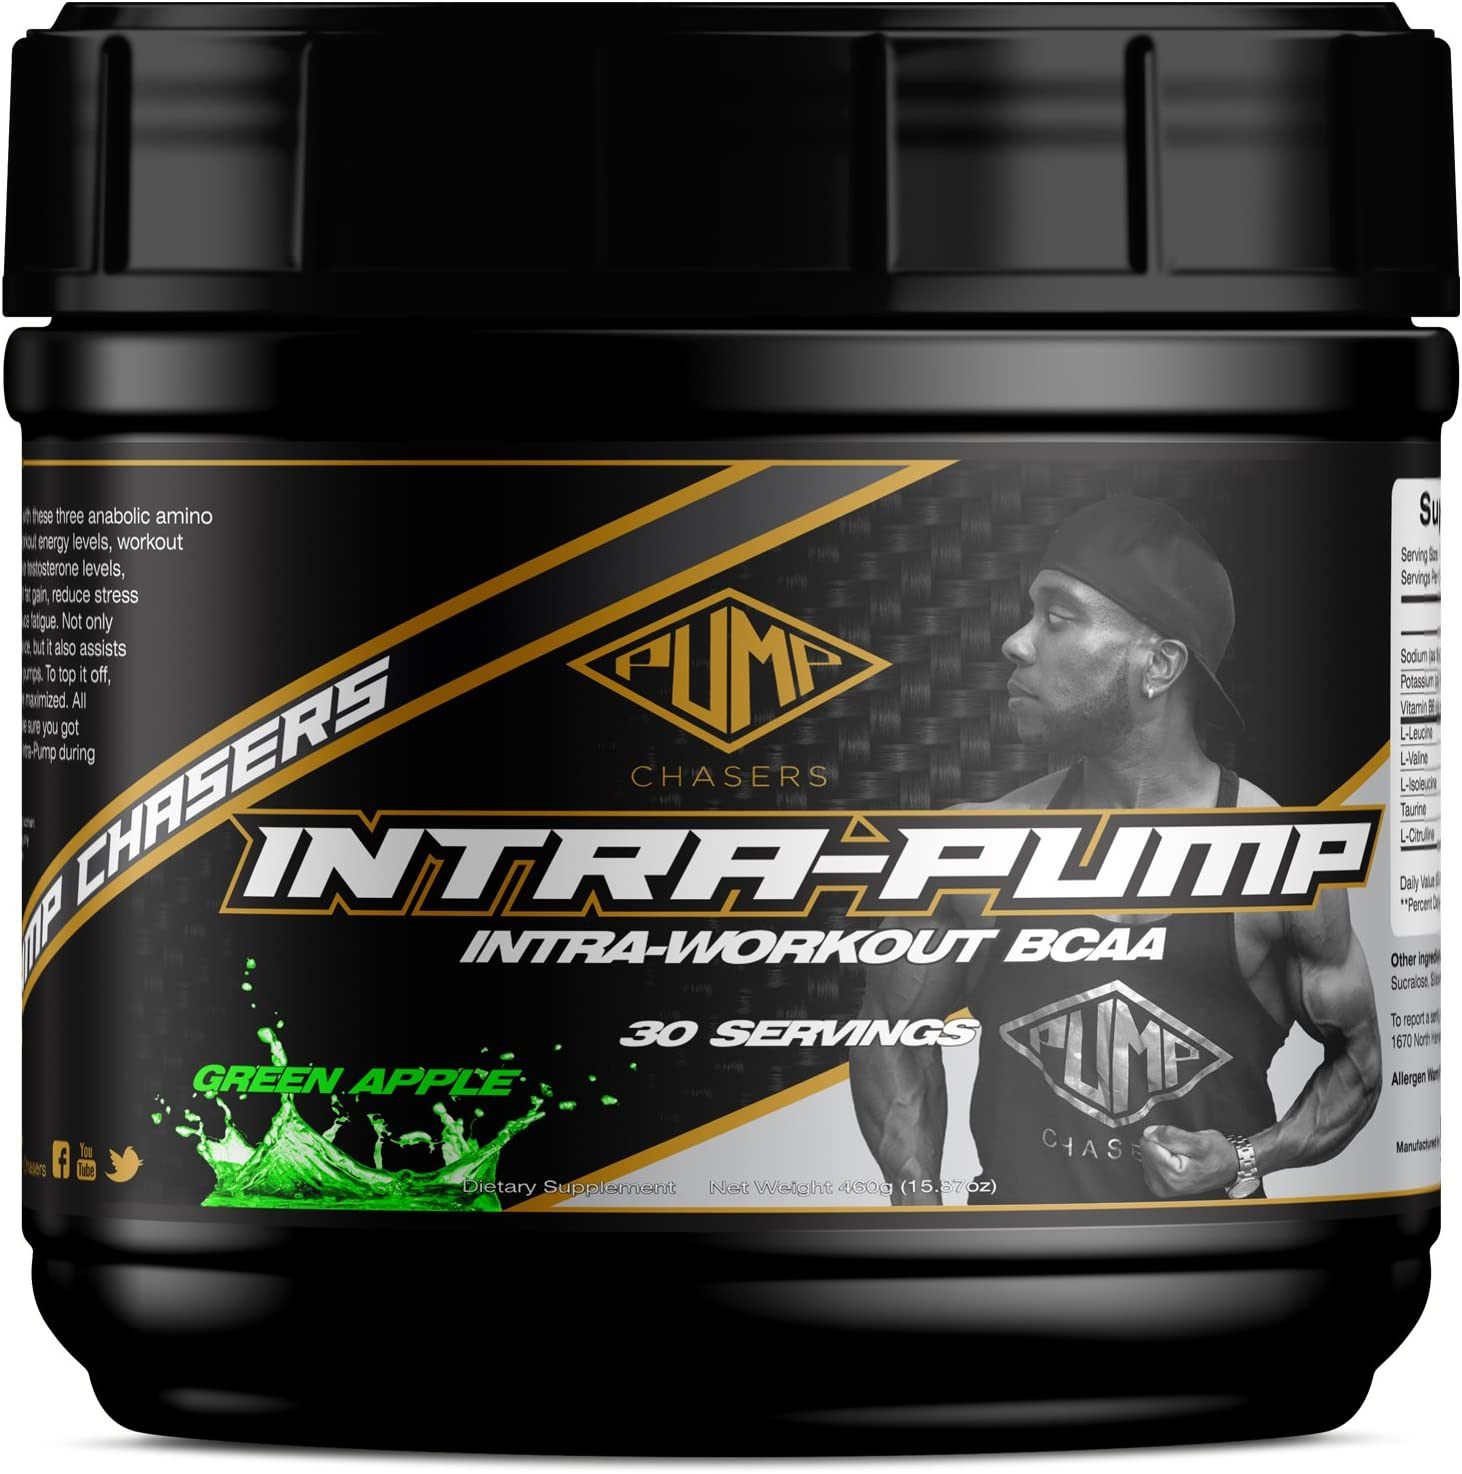 Pump Chasers Intrapump Green Apple – Intraworkout BCAA Supplement